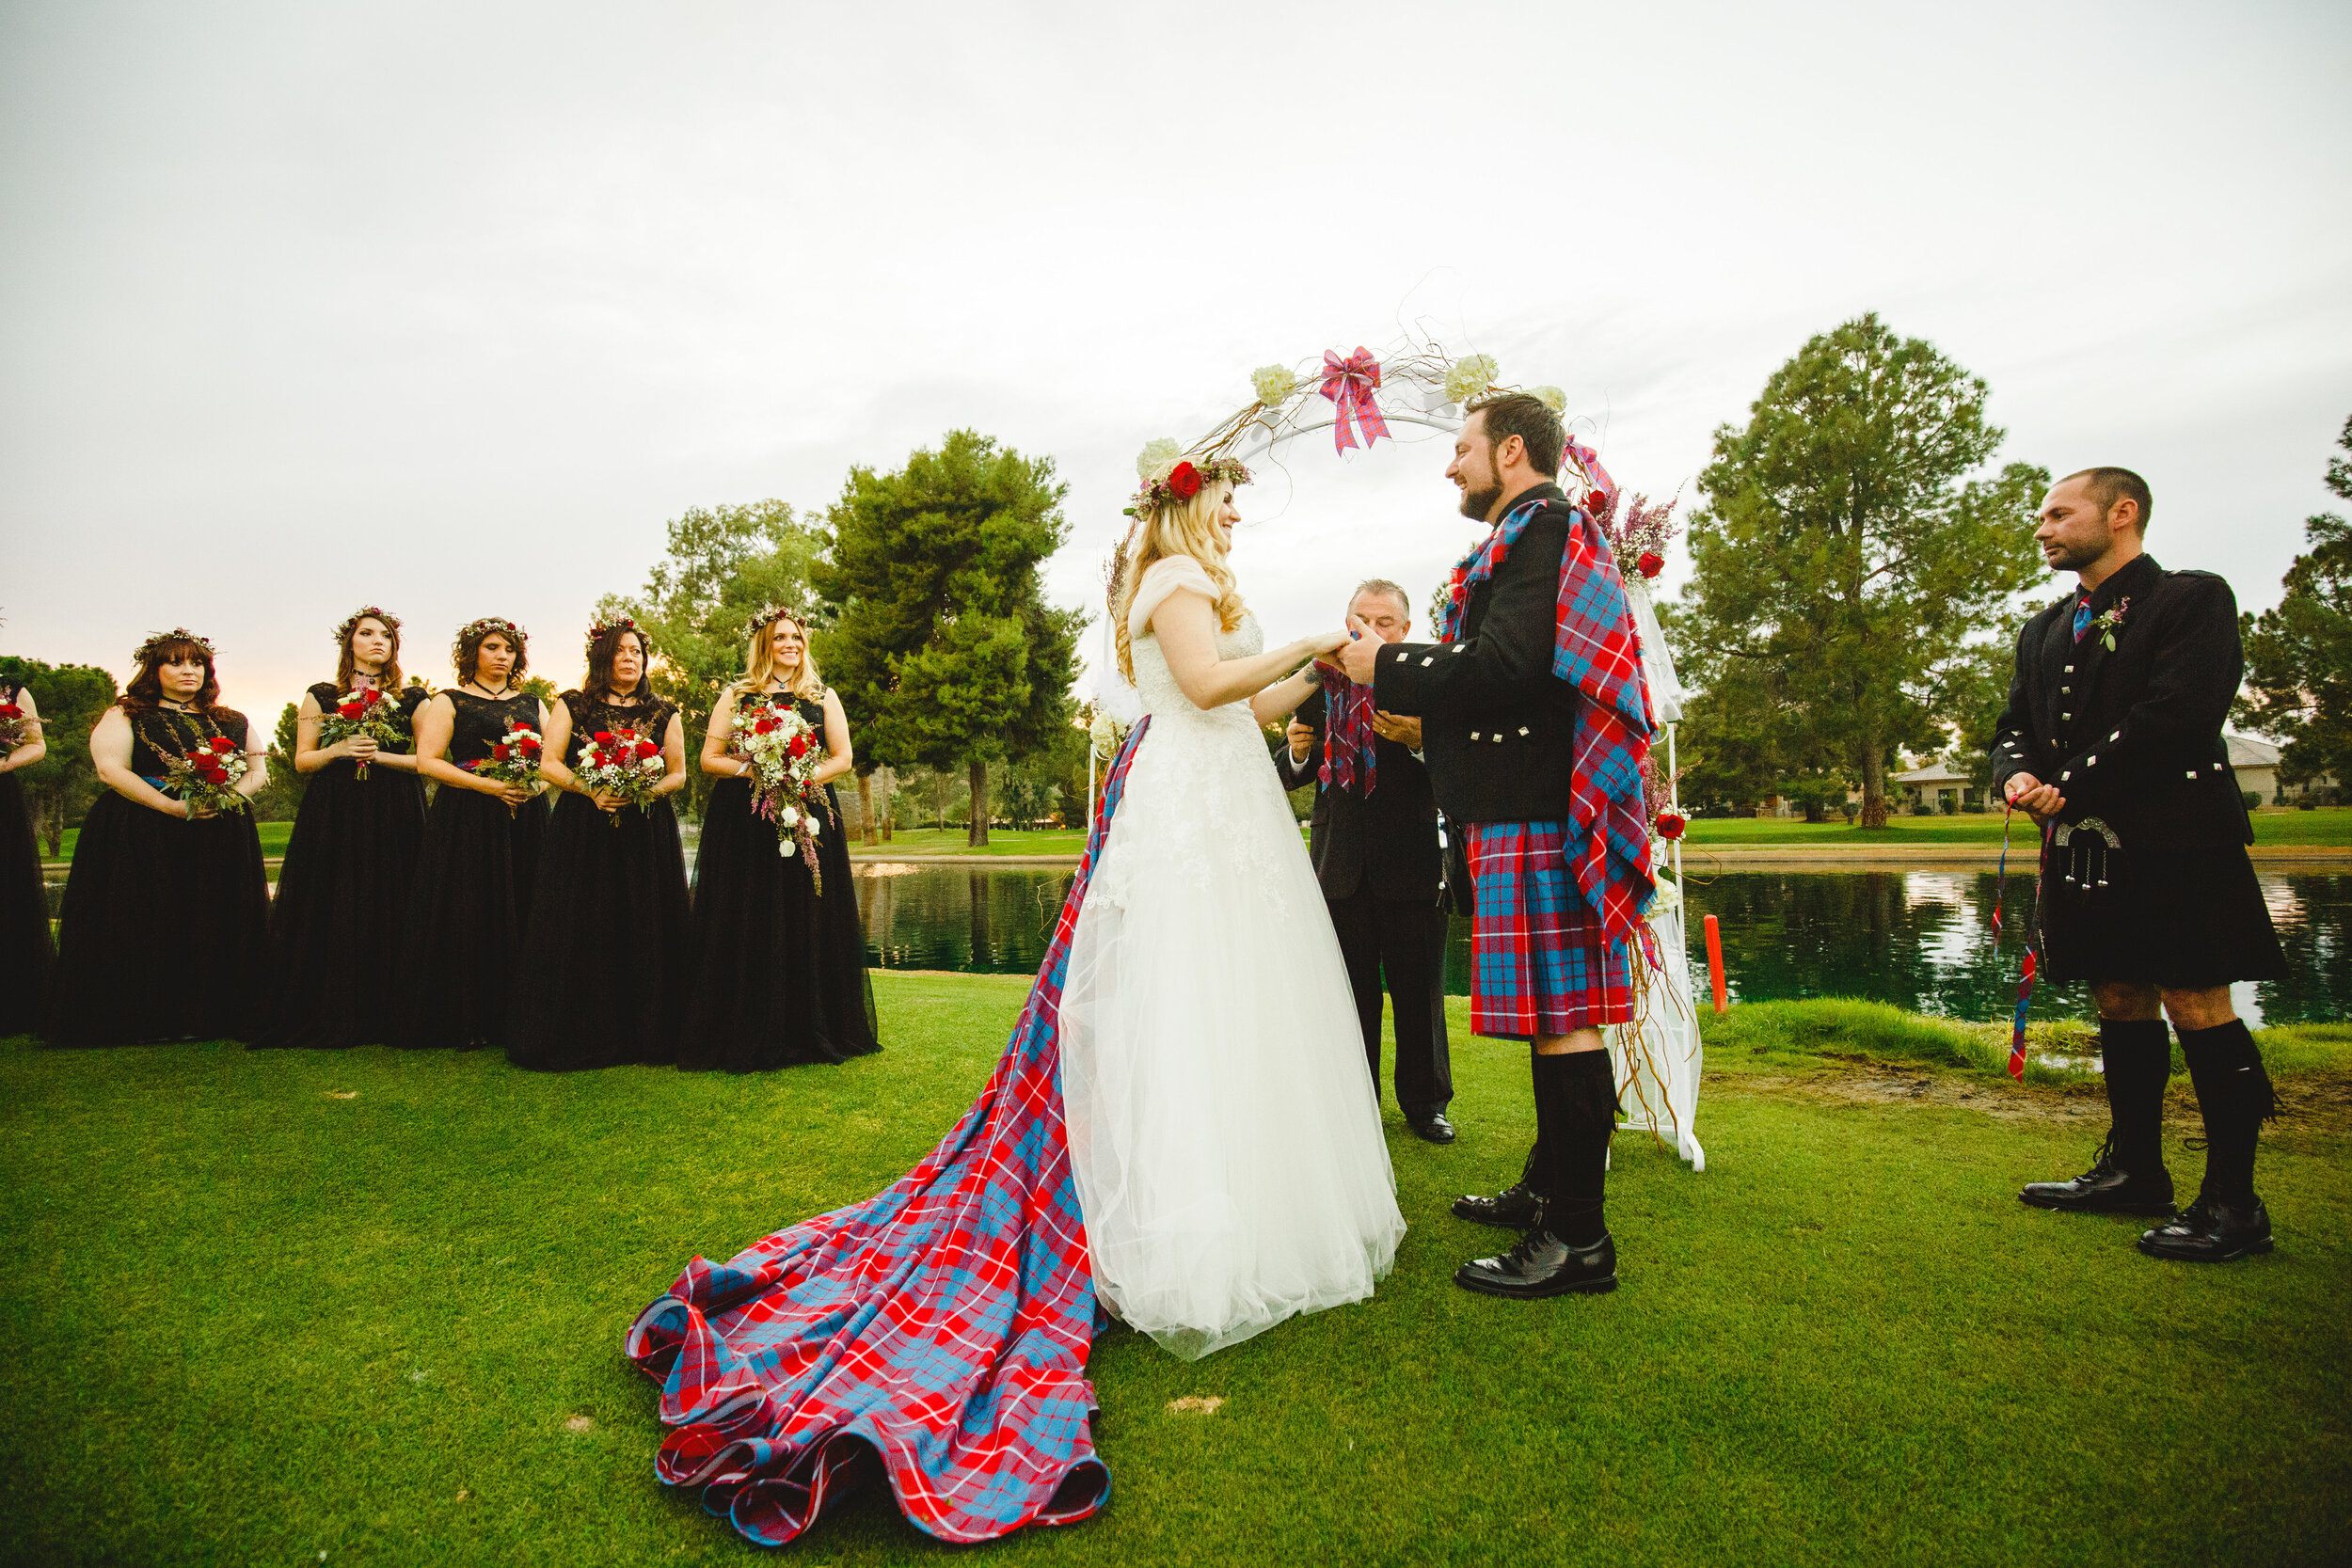 At cultural wedding, alternative bride wearing a redesigned wedding dress with Scottish cultural tartan train.jpg